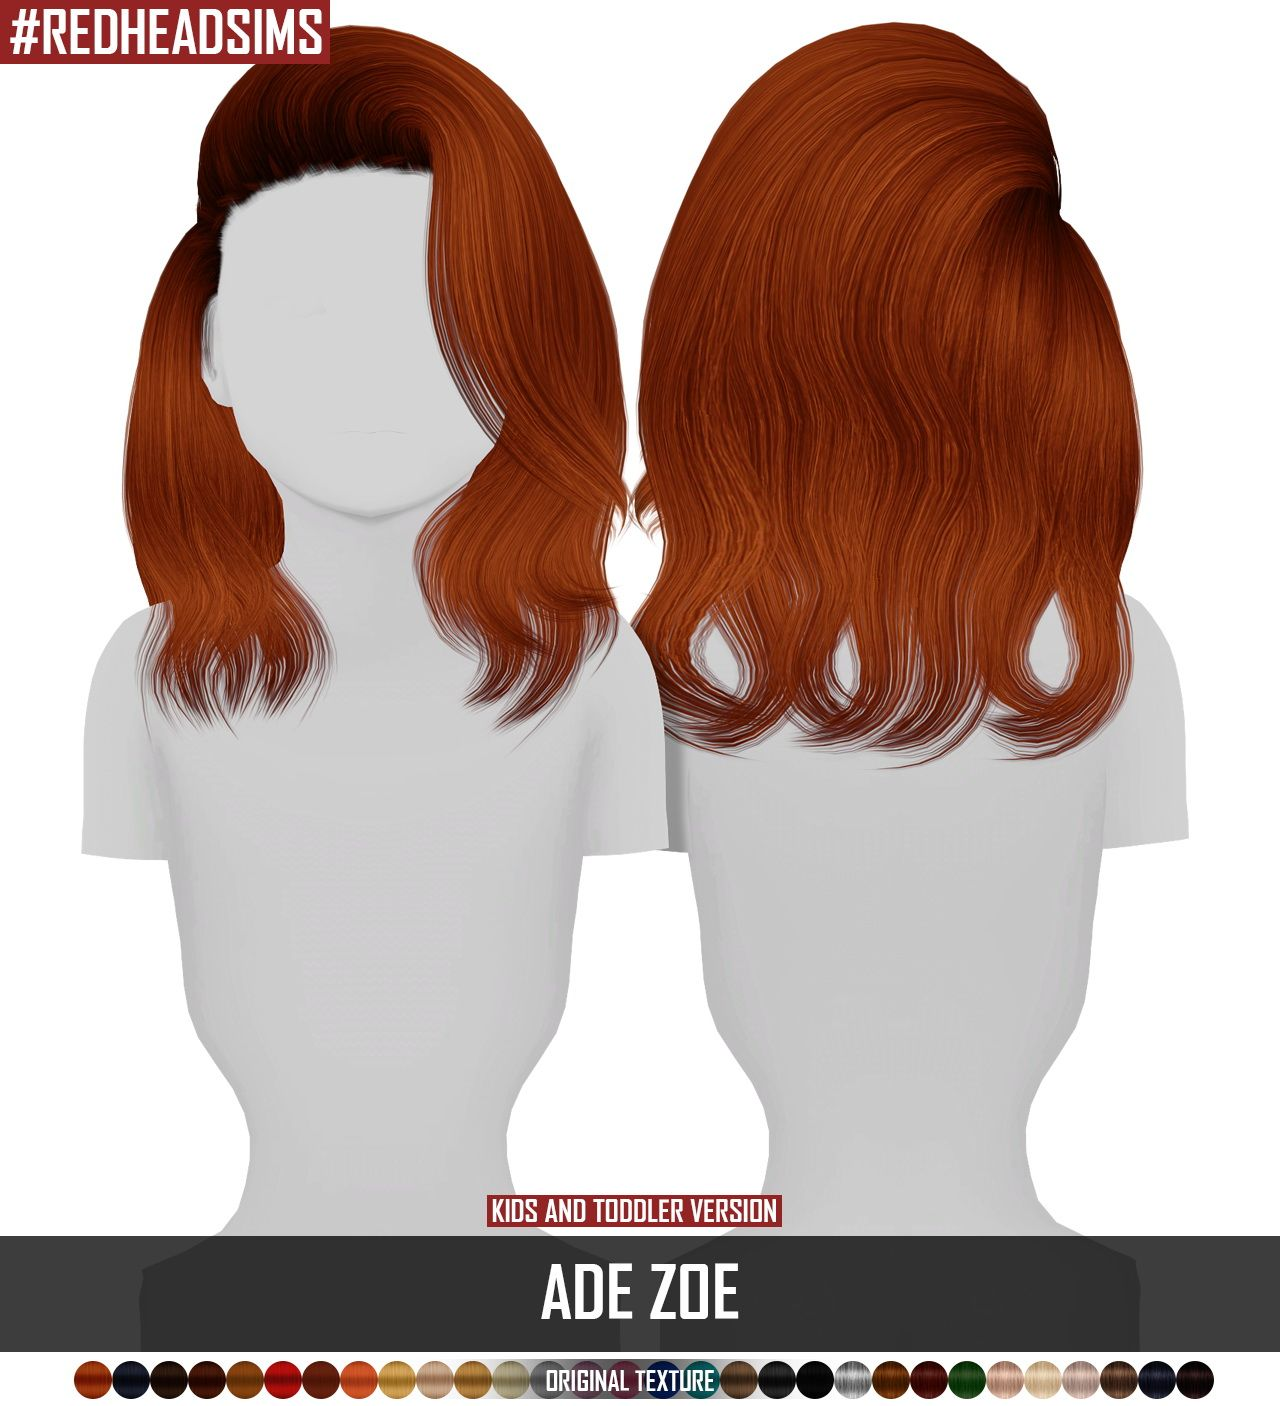 Coupure Electrique: AdeDrma`s Zoe hair retextured - Kids dn Toddlers version #toddlers